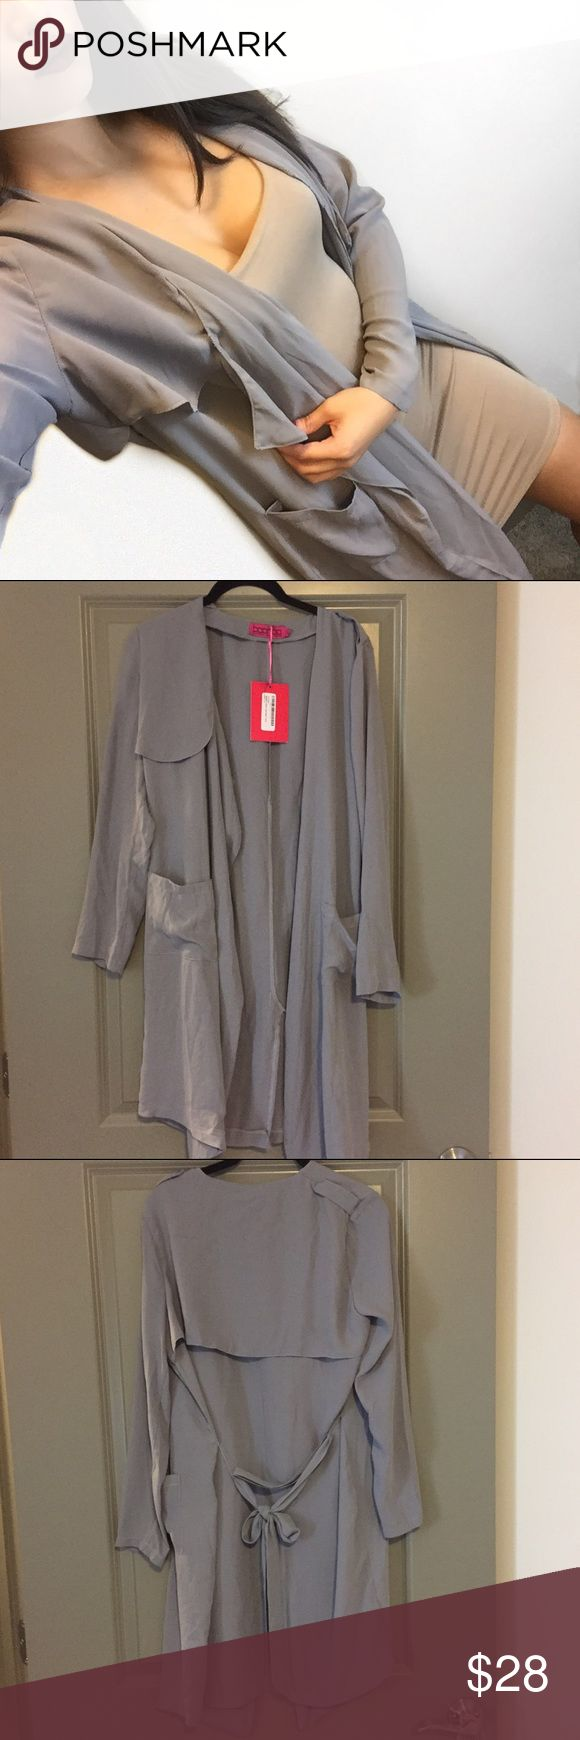 NWT Waterfall Trench Duster Jacket BooHoo Waterfall Trench/Duster Jacket. Light grayish purple color. Size US 6. Has a belt that you can also detach. Brand new, never worn, tags still attached. Just haven't worn it yet so am selling it for what I paid. Perfect condition. Boohoo Jackets & Coats Trench Coats